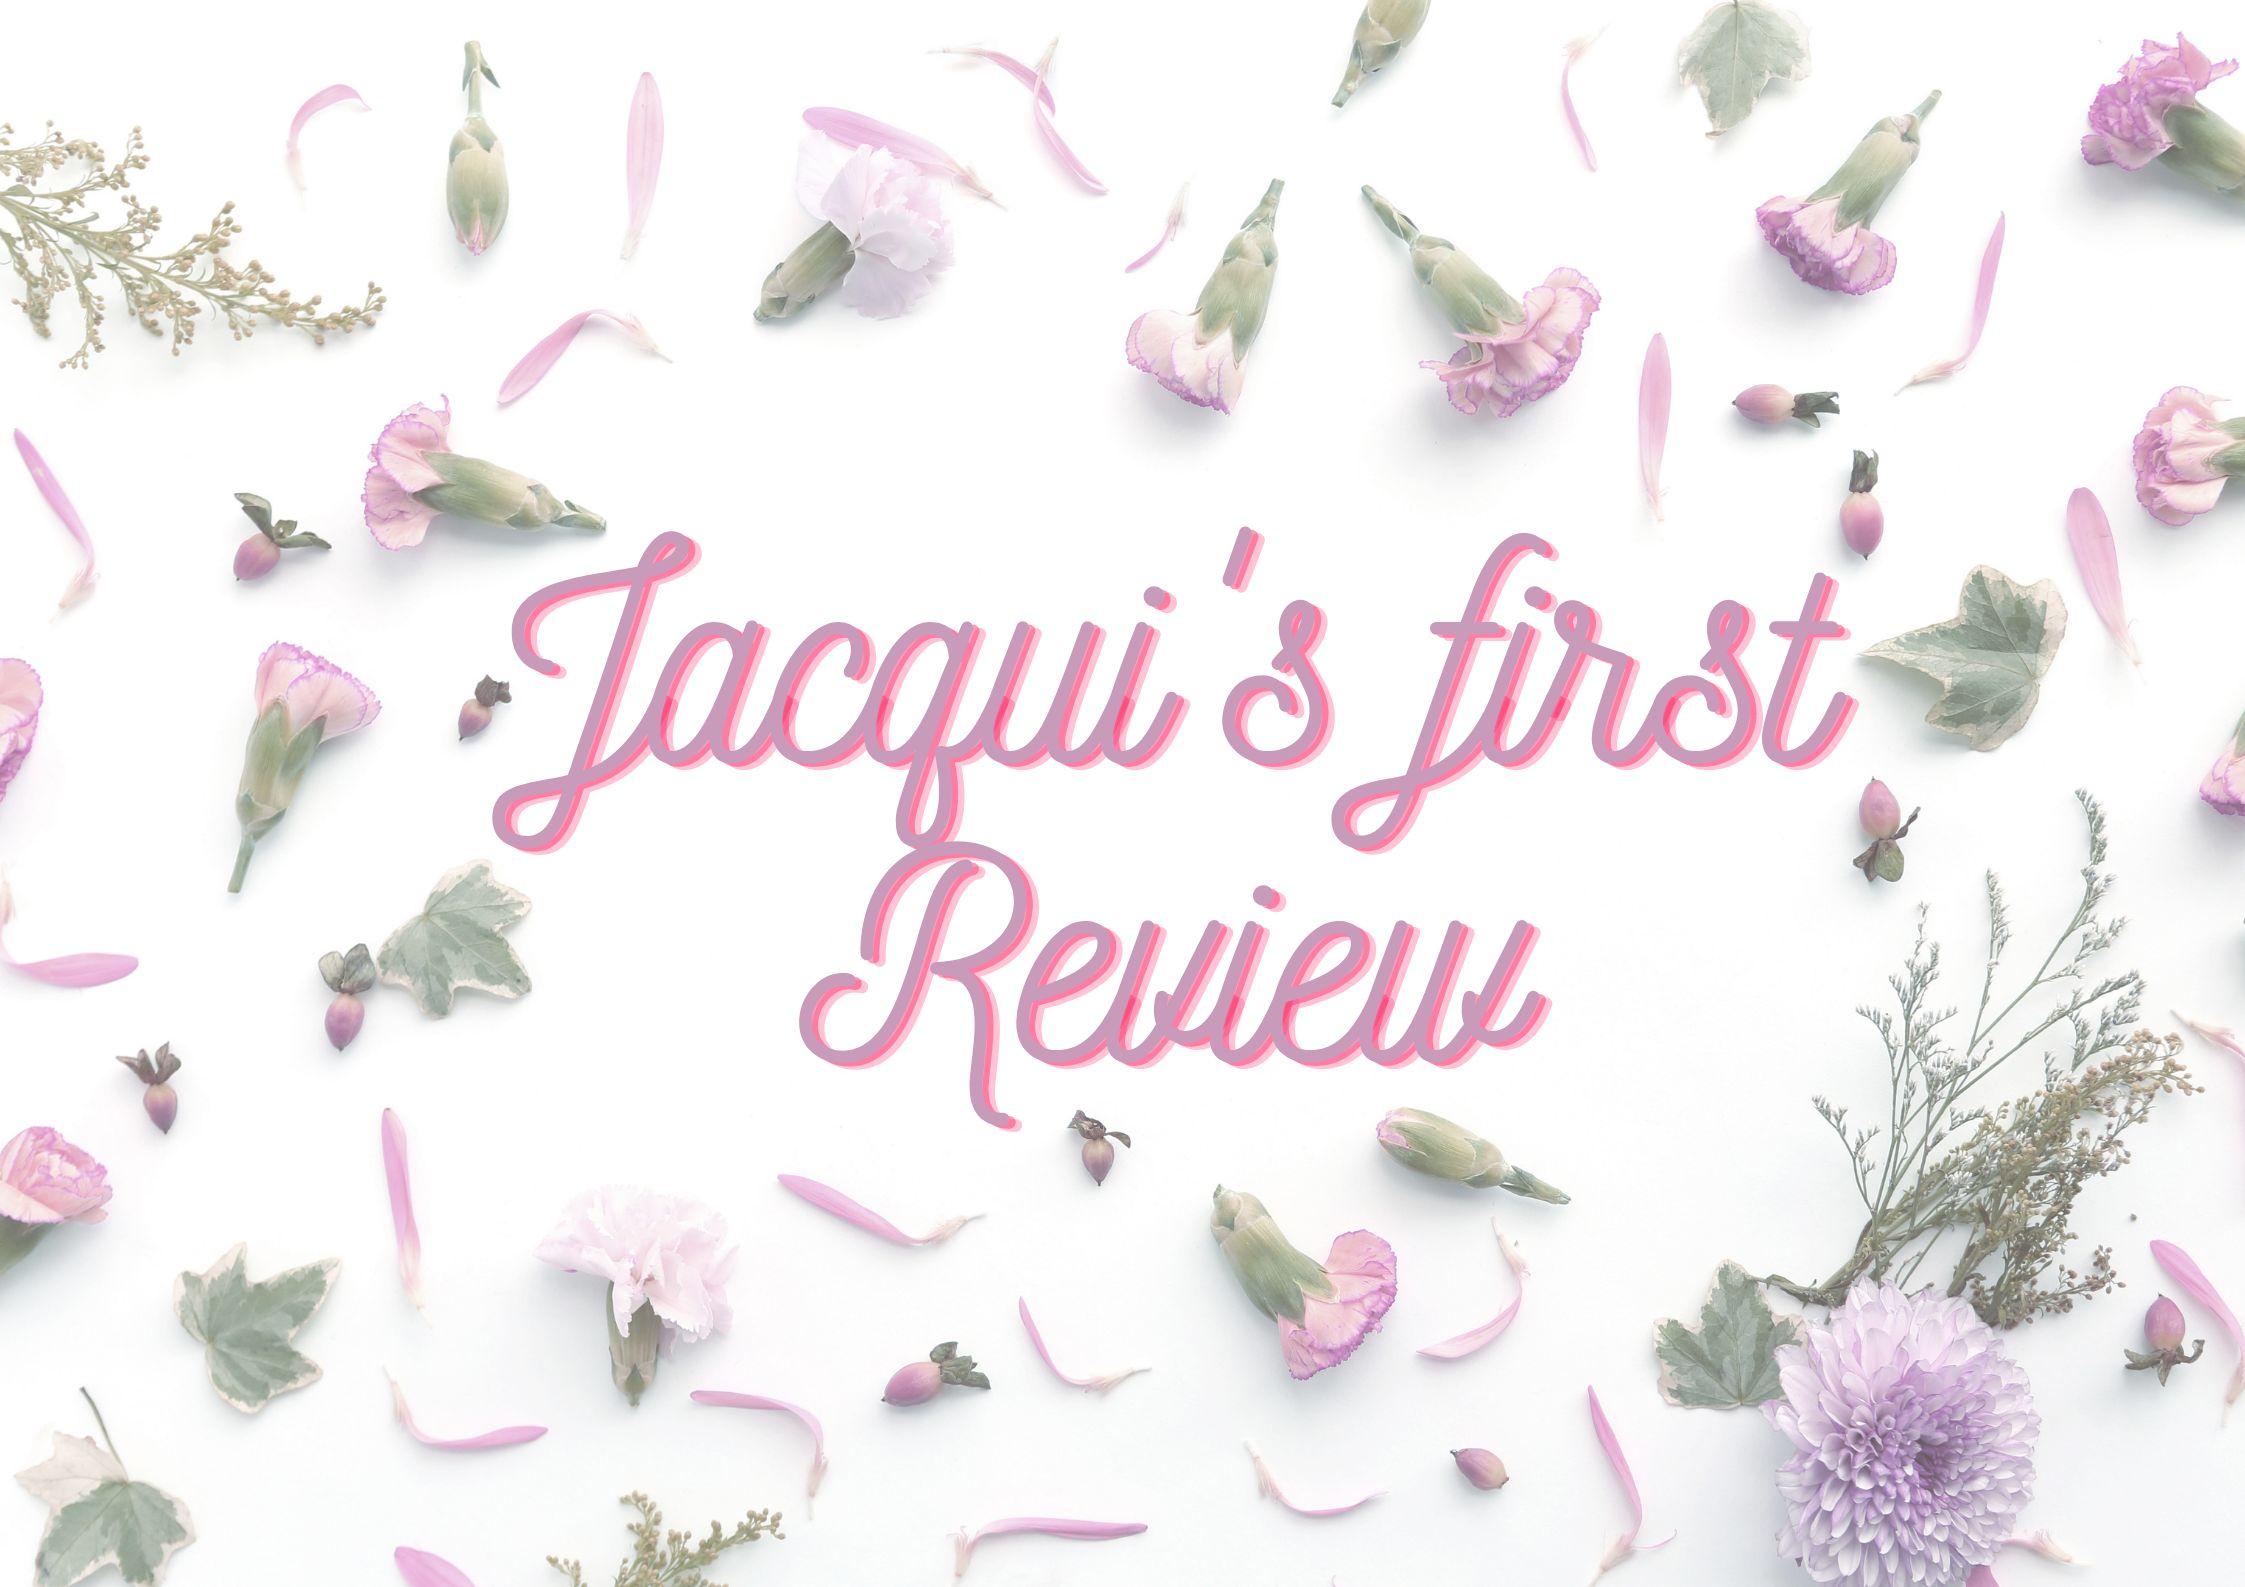 Jacqui's first review thumbnail image.